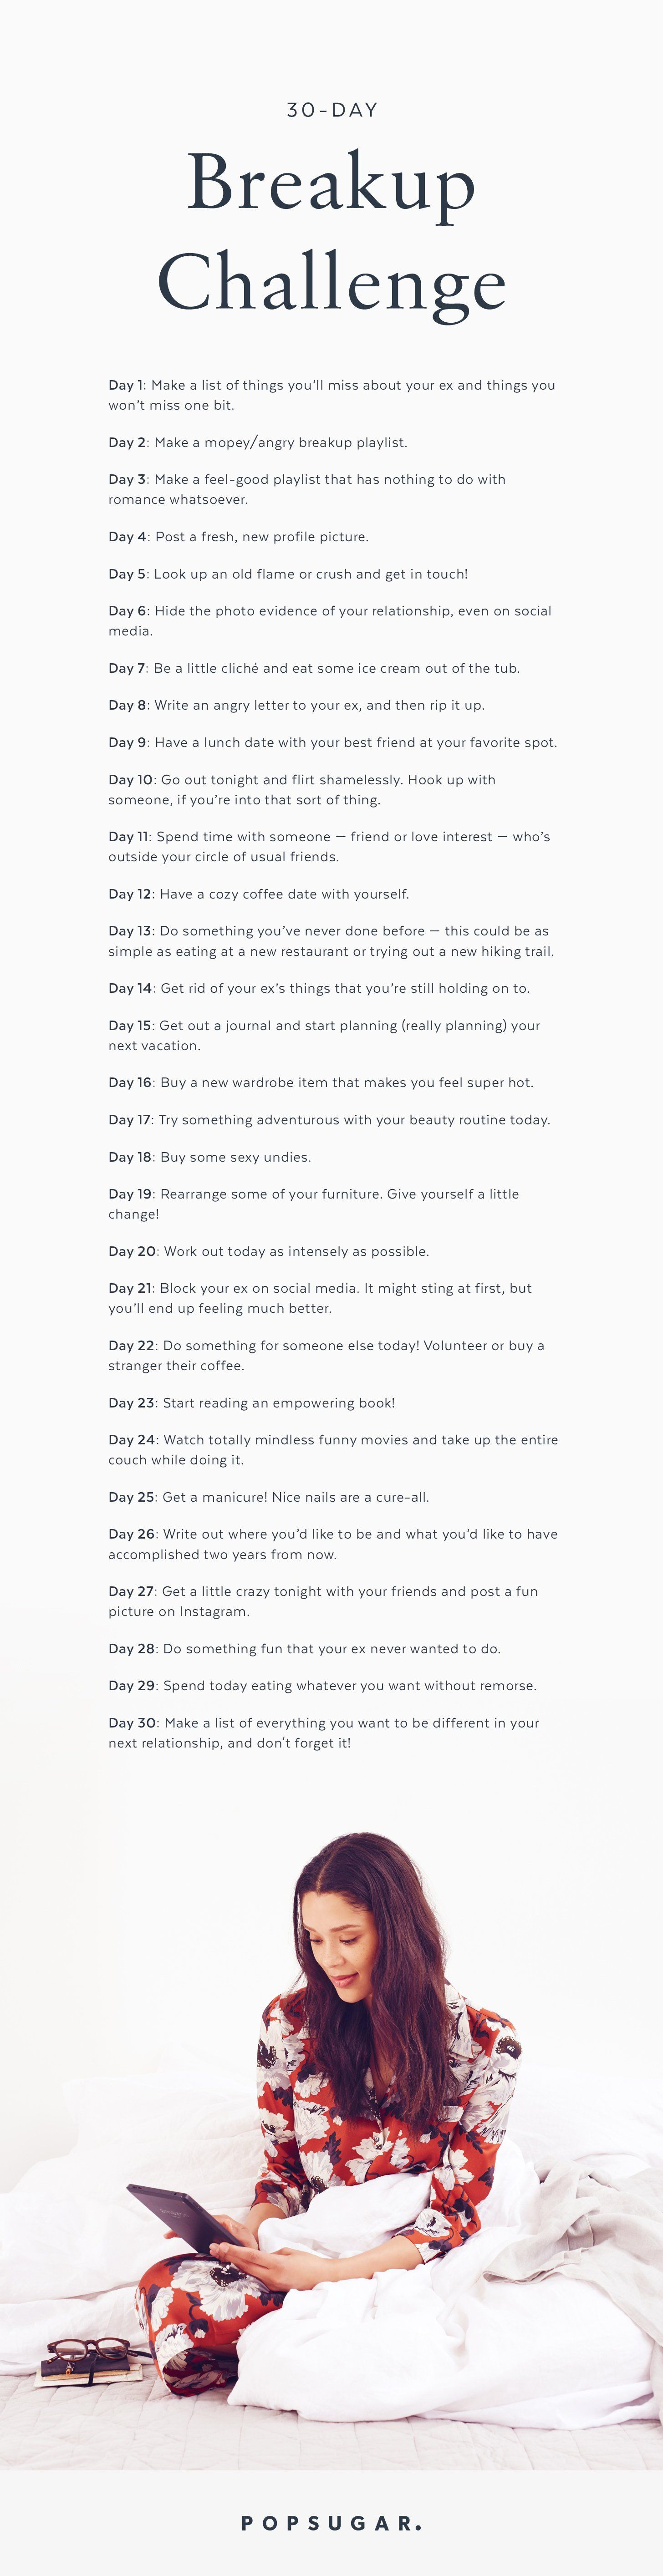 Going Through A Breakup Take Our 30 Day Challenge Breakup